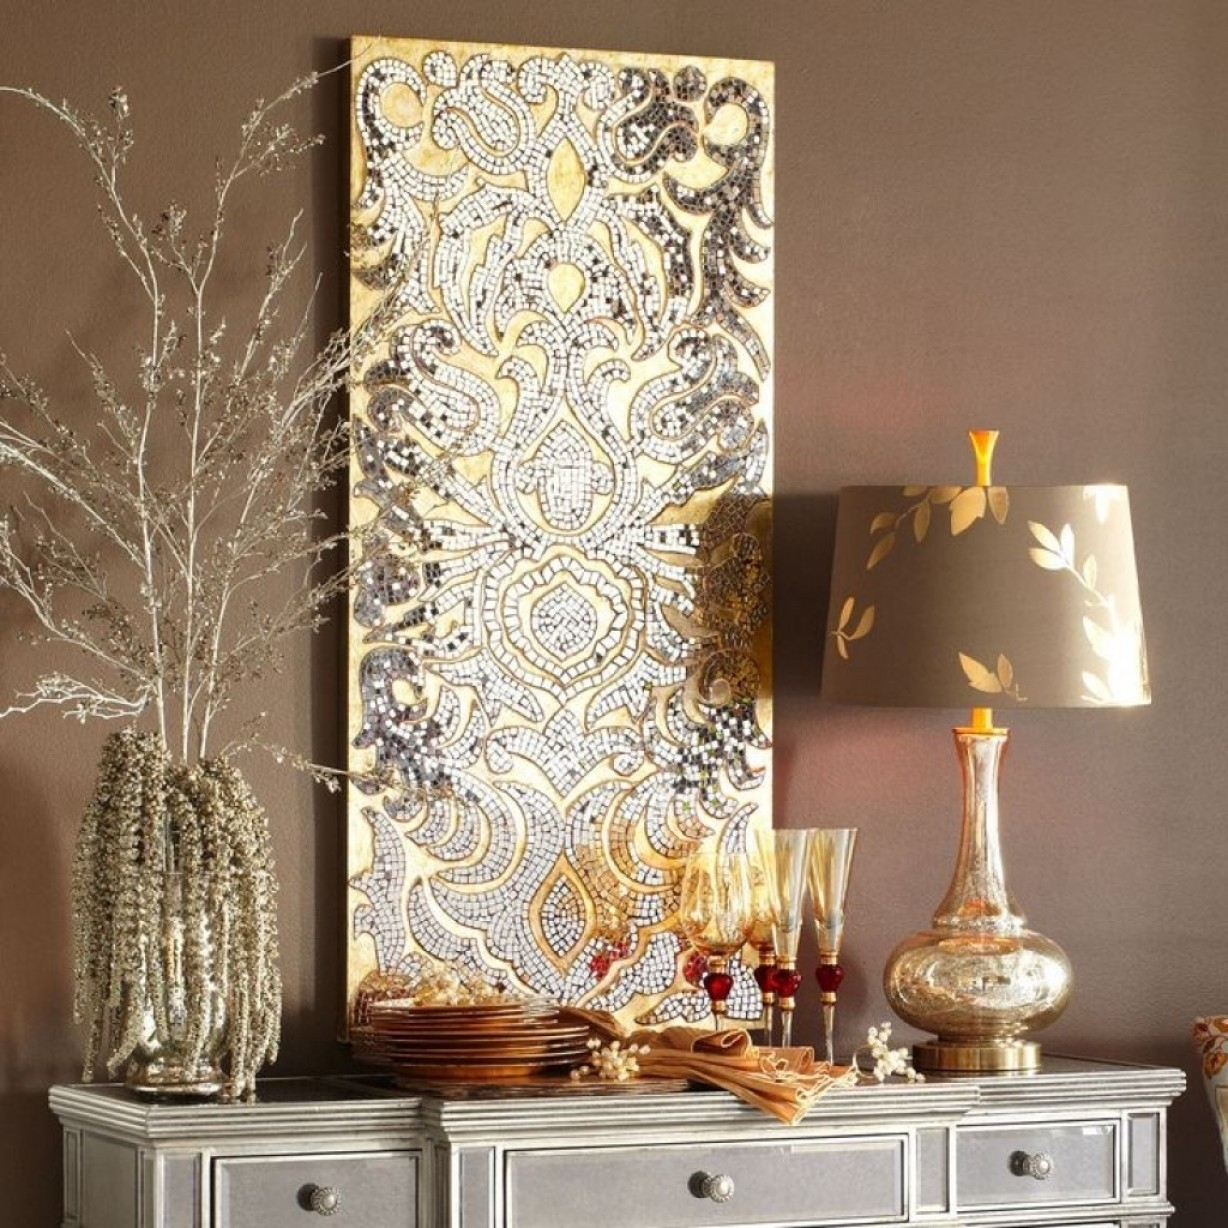 Mirror Wall Decor Superb Mirrored Wall Decor – Wall Art And Wall Pertaining To Most Recently Released Unique Wall Accents (View 11 of 15)